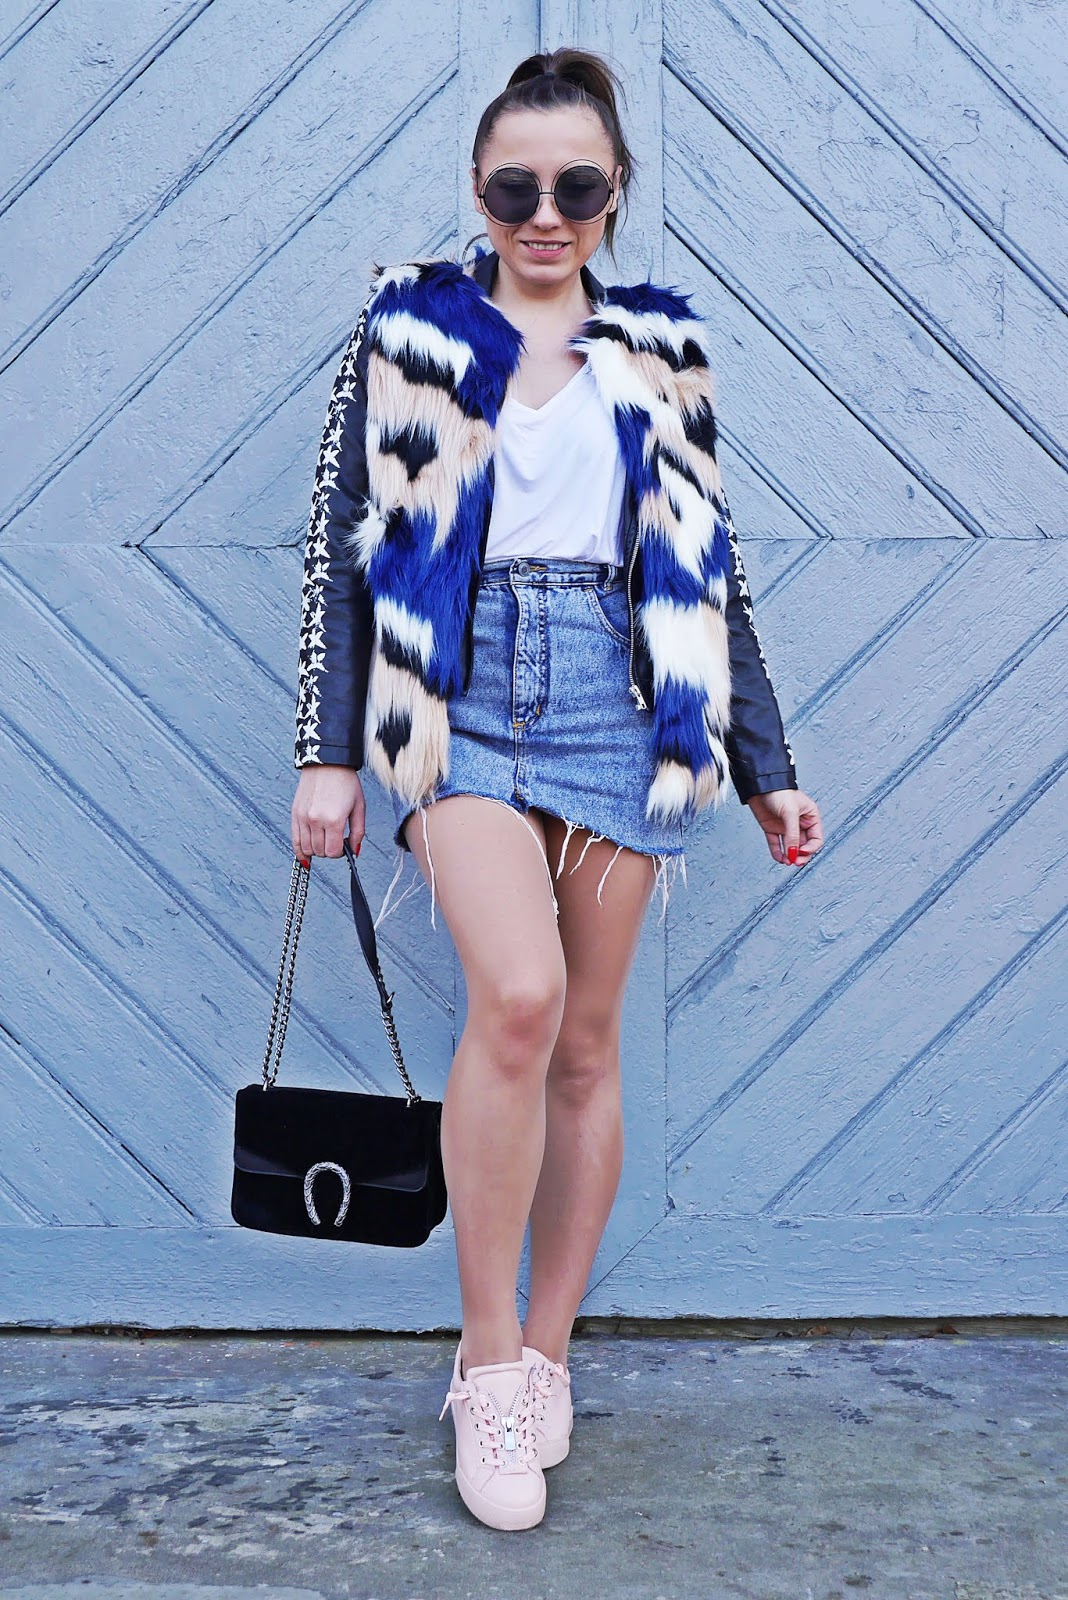 pink sneakers outfit look denim skir fur waist karyn fashion blogger